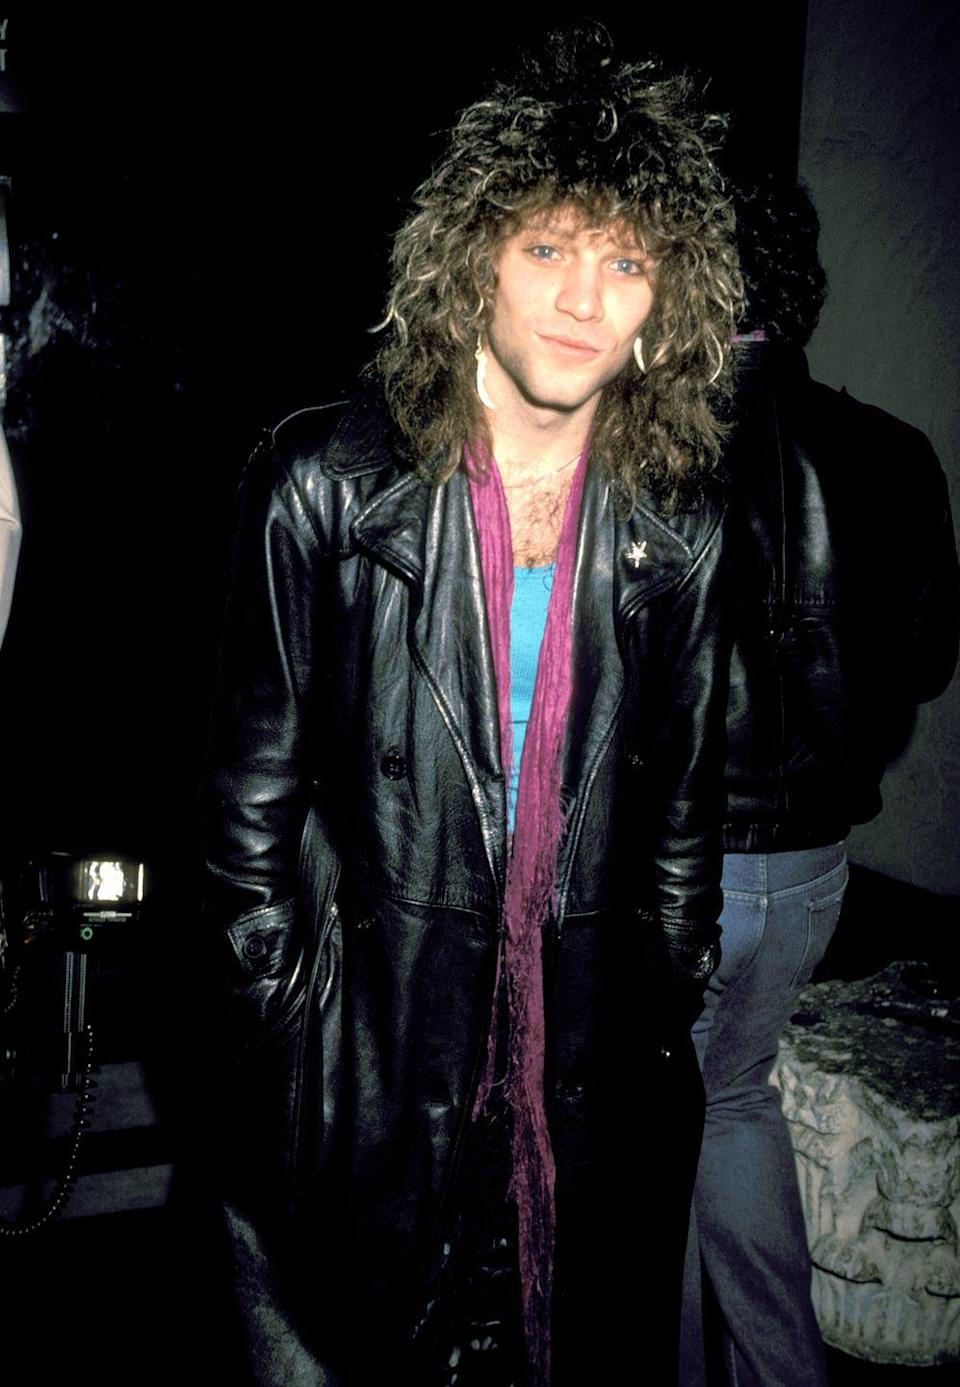 <p>Jon Bon Jovi was a bonafide '80s heartthrob with his curly and big hair. The singer rocked the look for years until transitioning to a more modern, short cut. </p>